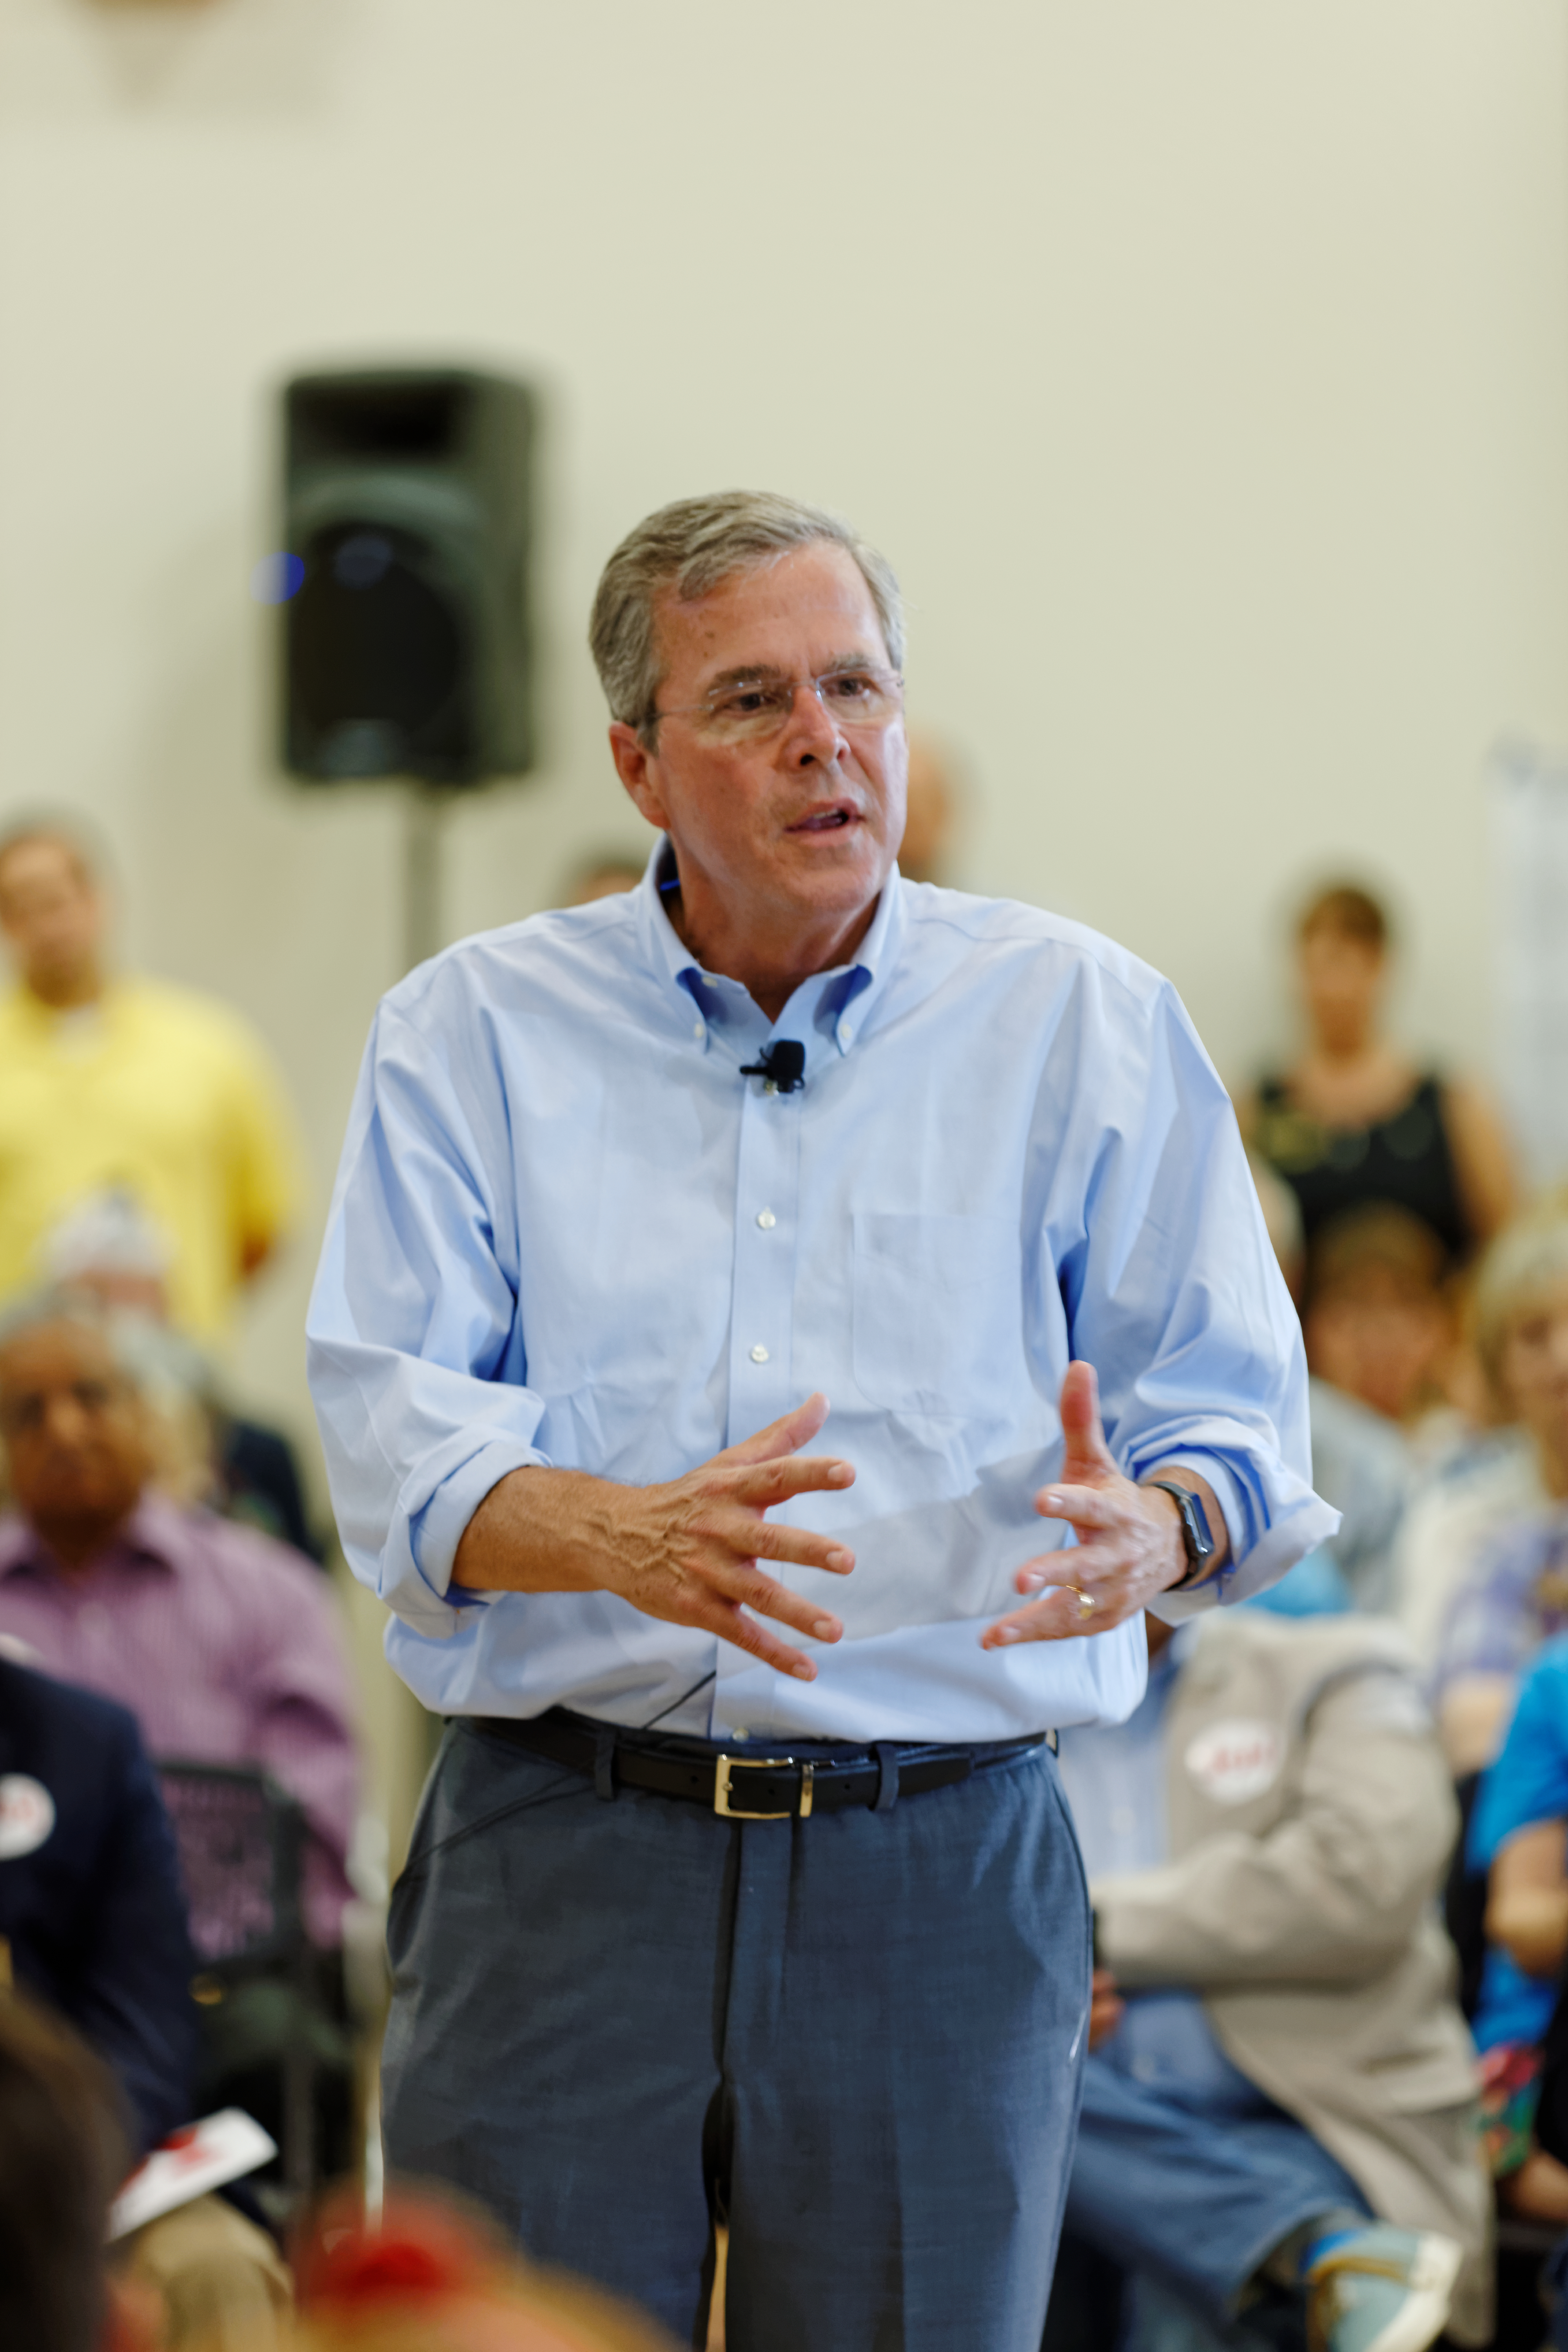 Governor of Florida Jeb Bush at TurboCam, Barrington, New Hampshire on August 21th by Michael Vadon.jpg English: COPYRIGHT IS CREATIVE COMMONS